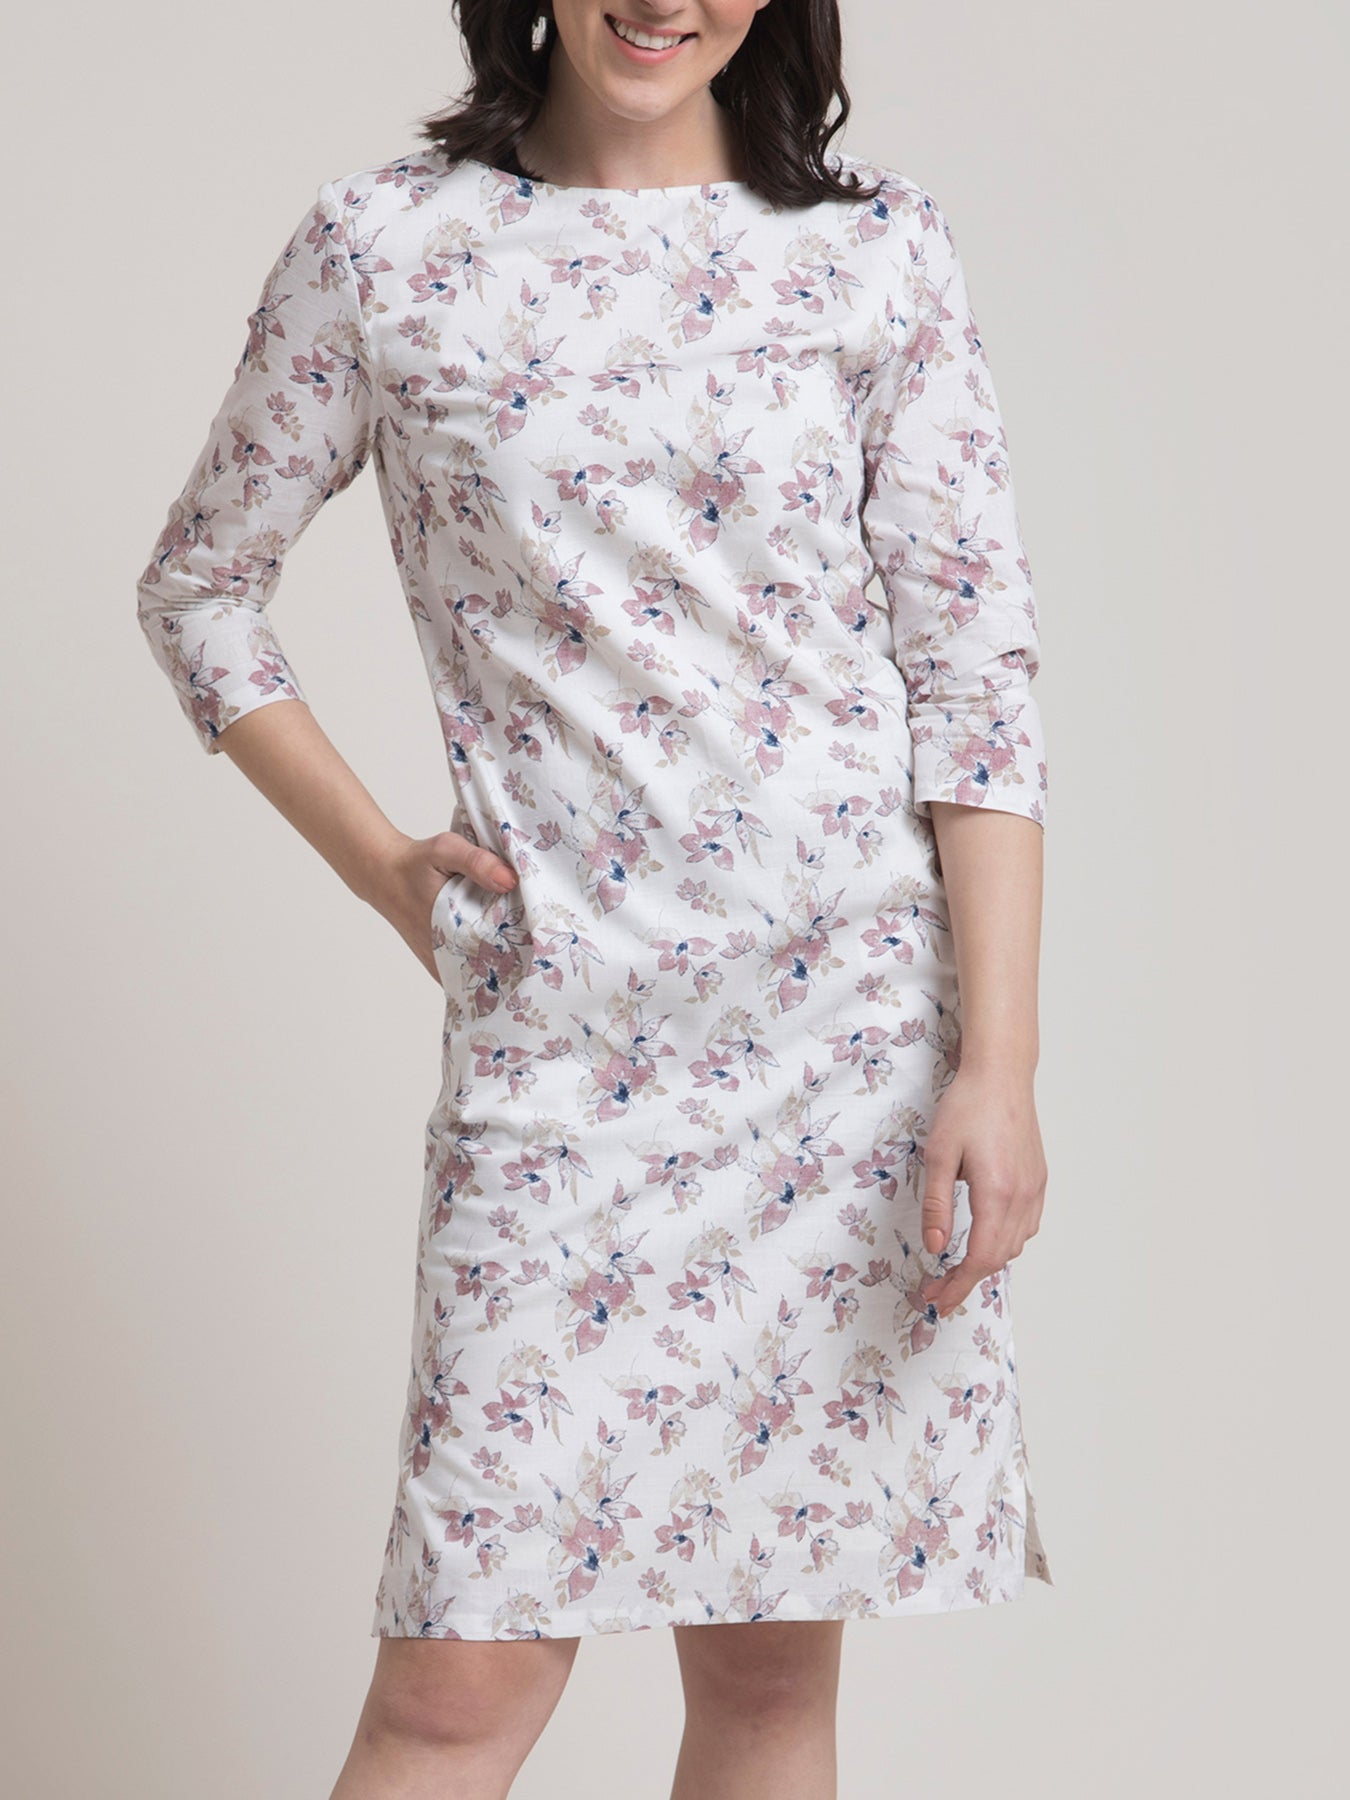 Linen Boat Neck Floral Dress - Pink and White